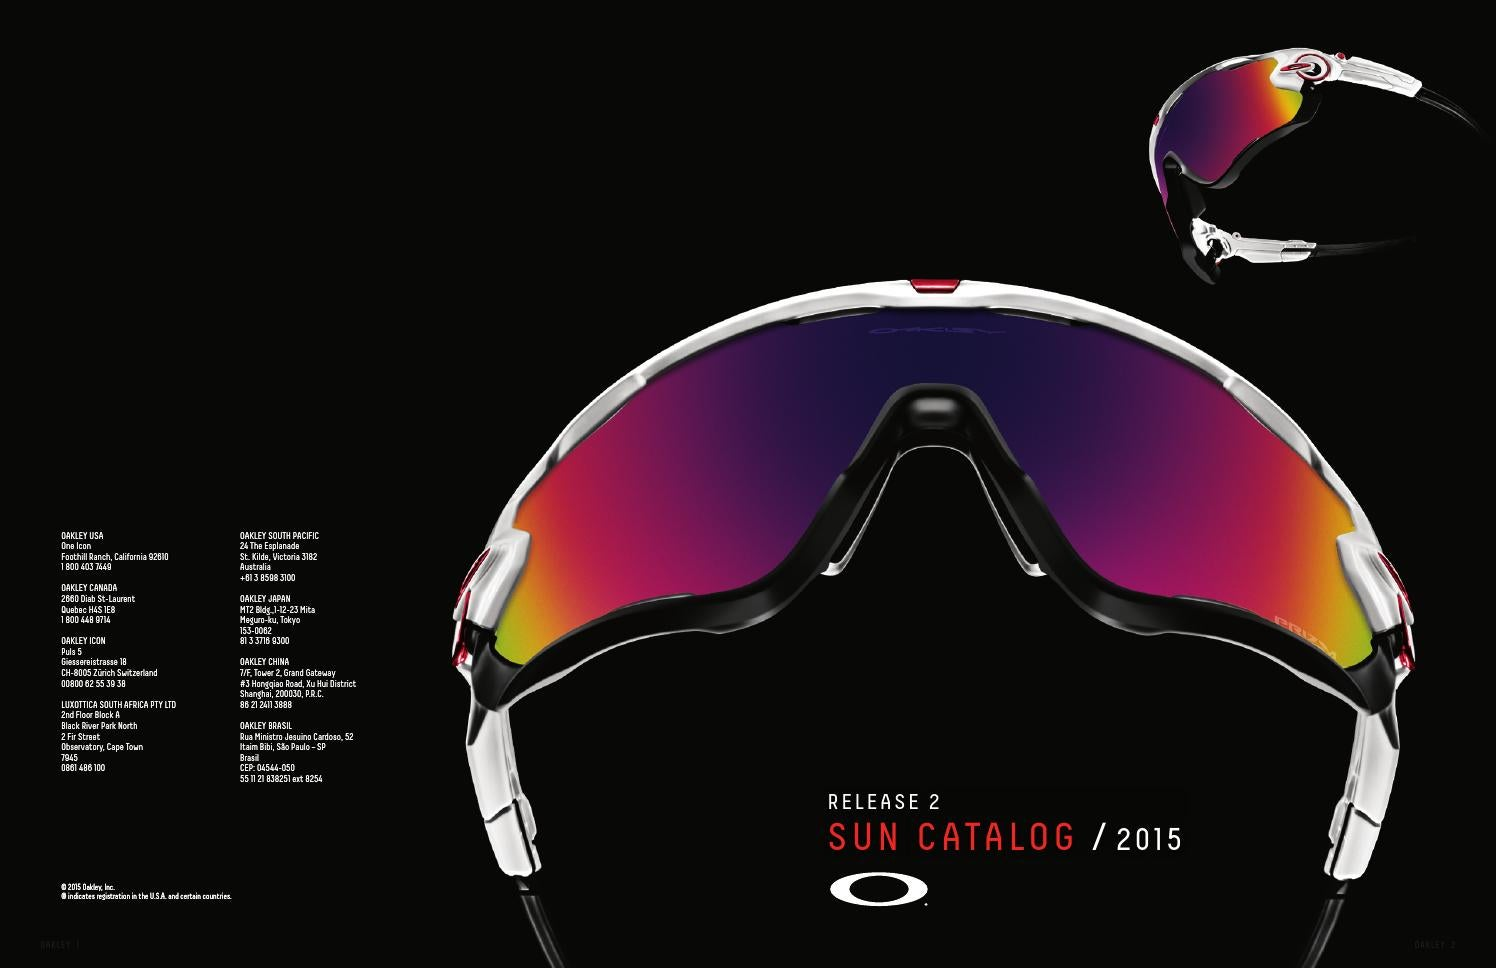 f317129a77 R2 eyewear catalog(1) by Matthew Weisman - issuu